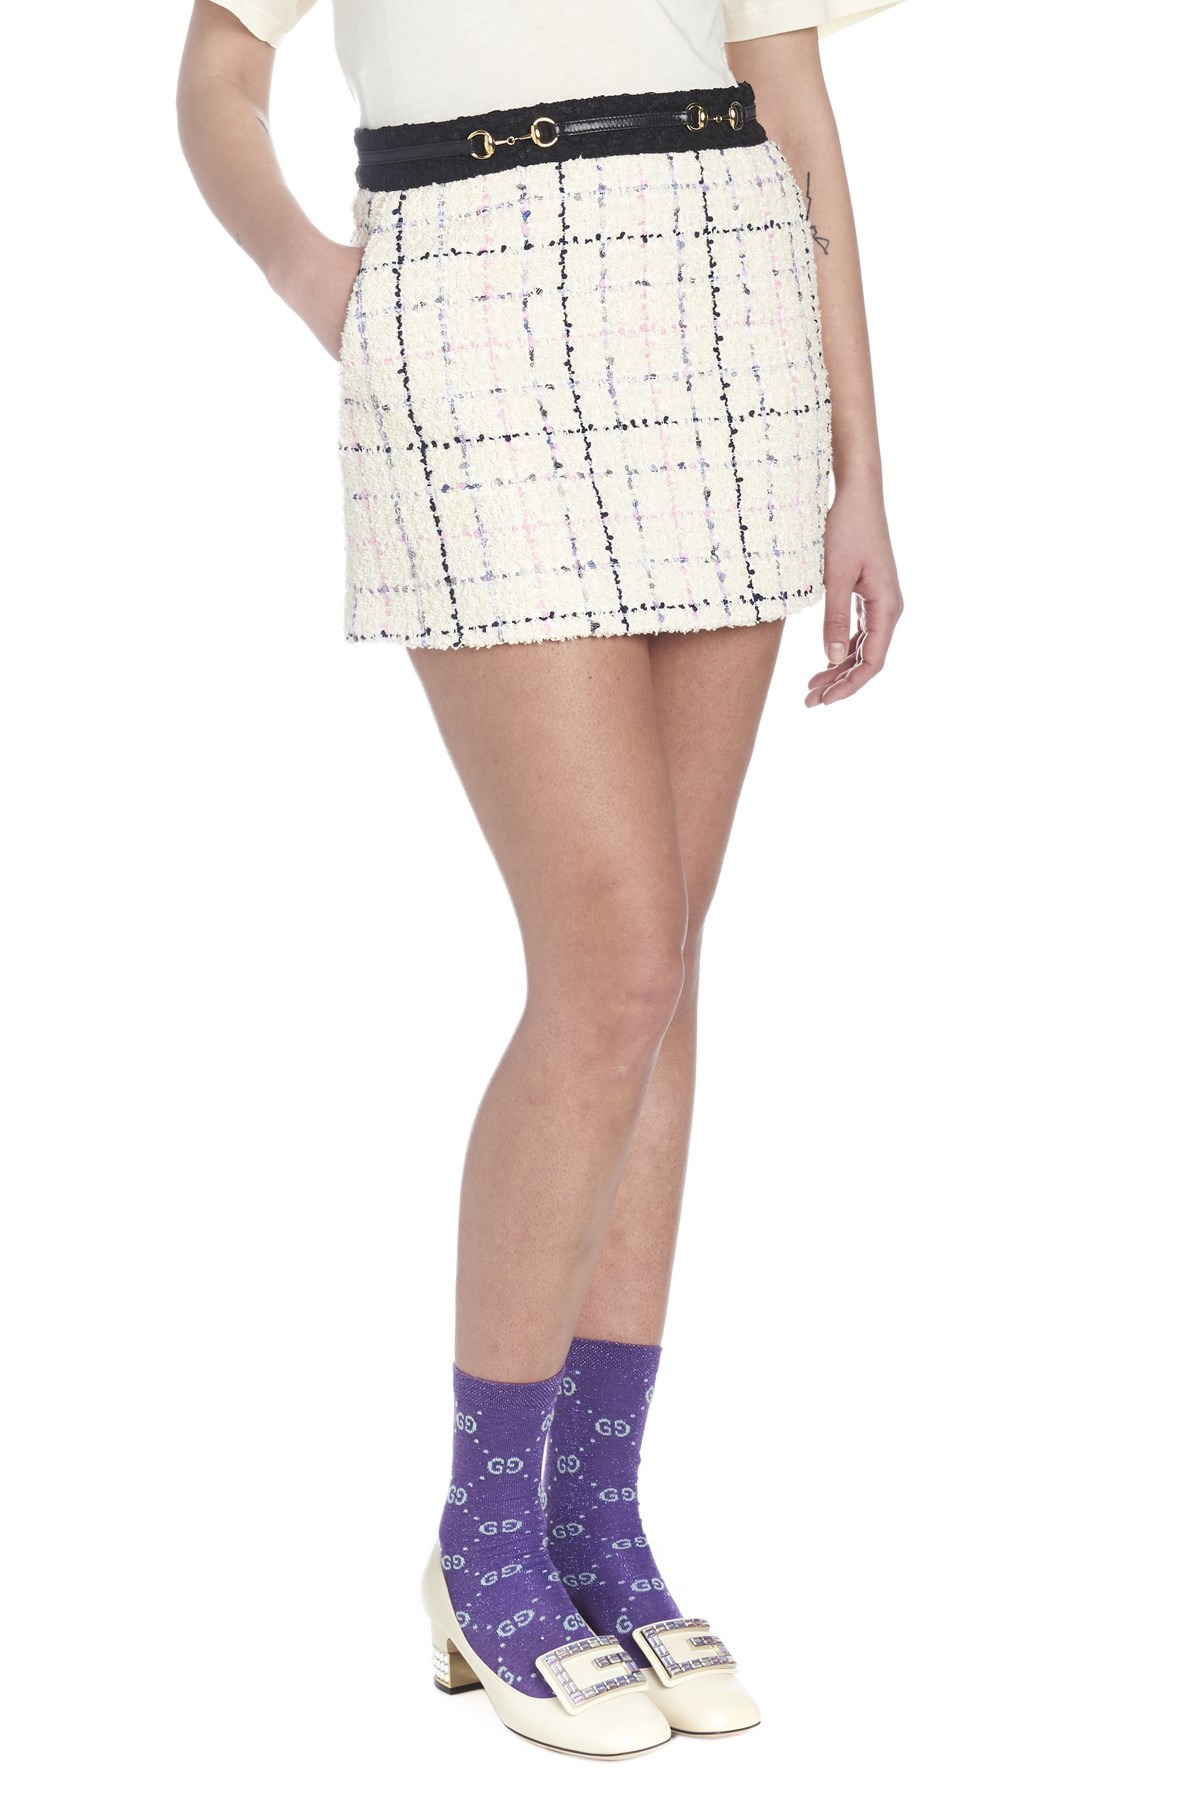 a281e5b6c3c0 gucci 'Romantic tweed' skirt available on julian-fashion.com - 65835